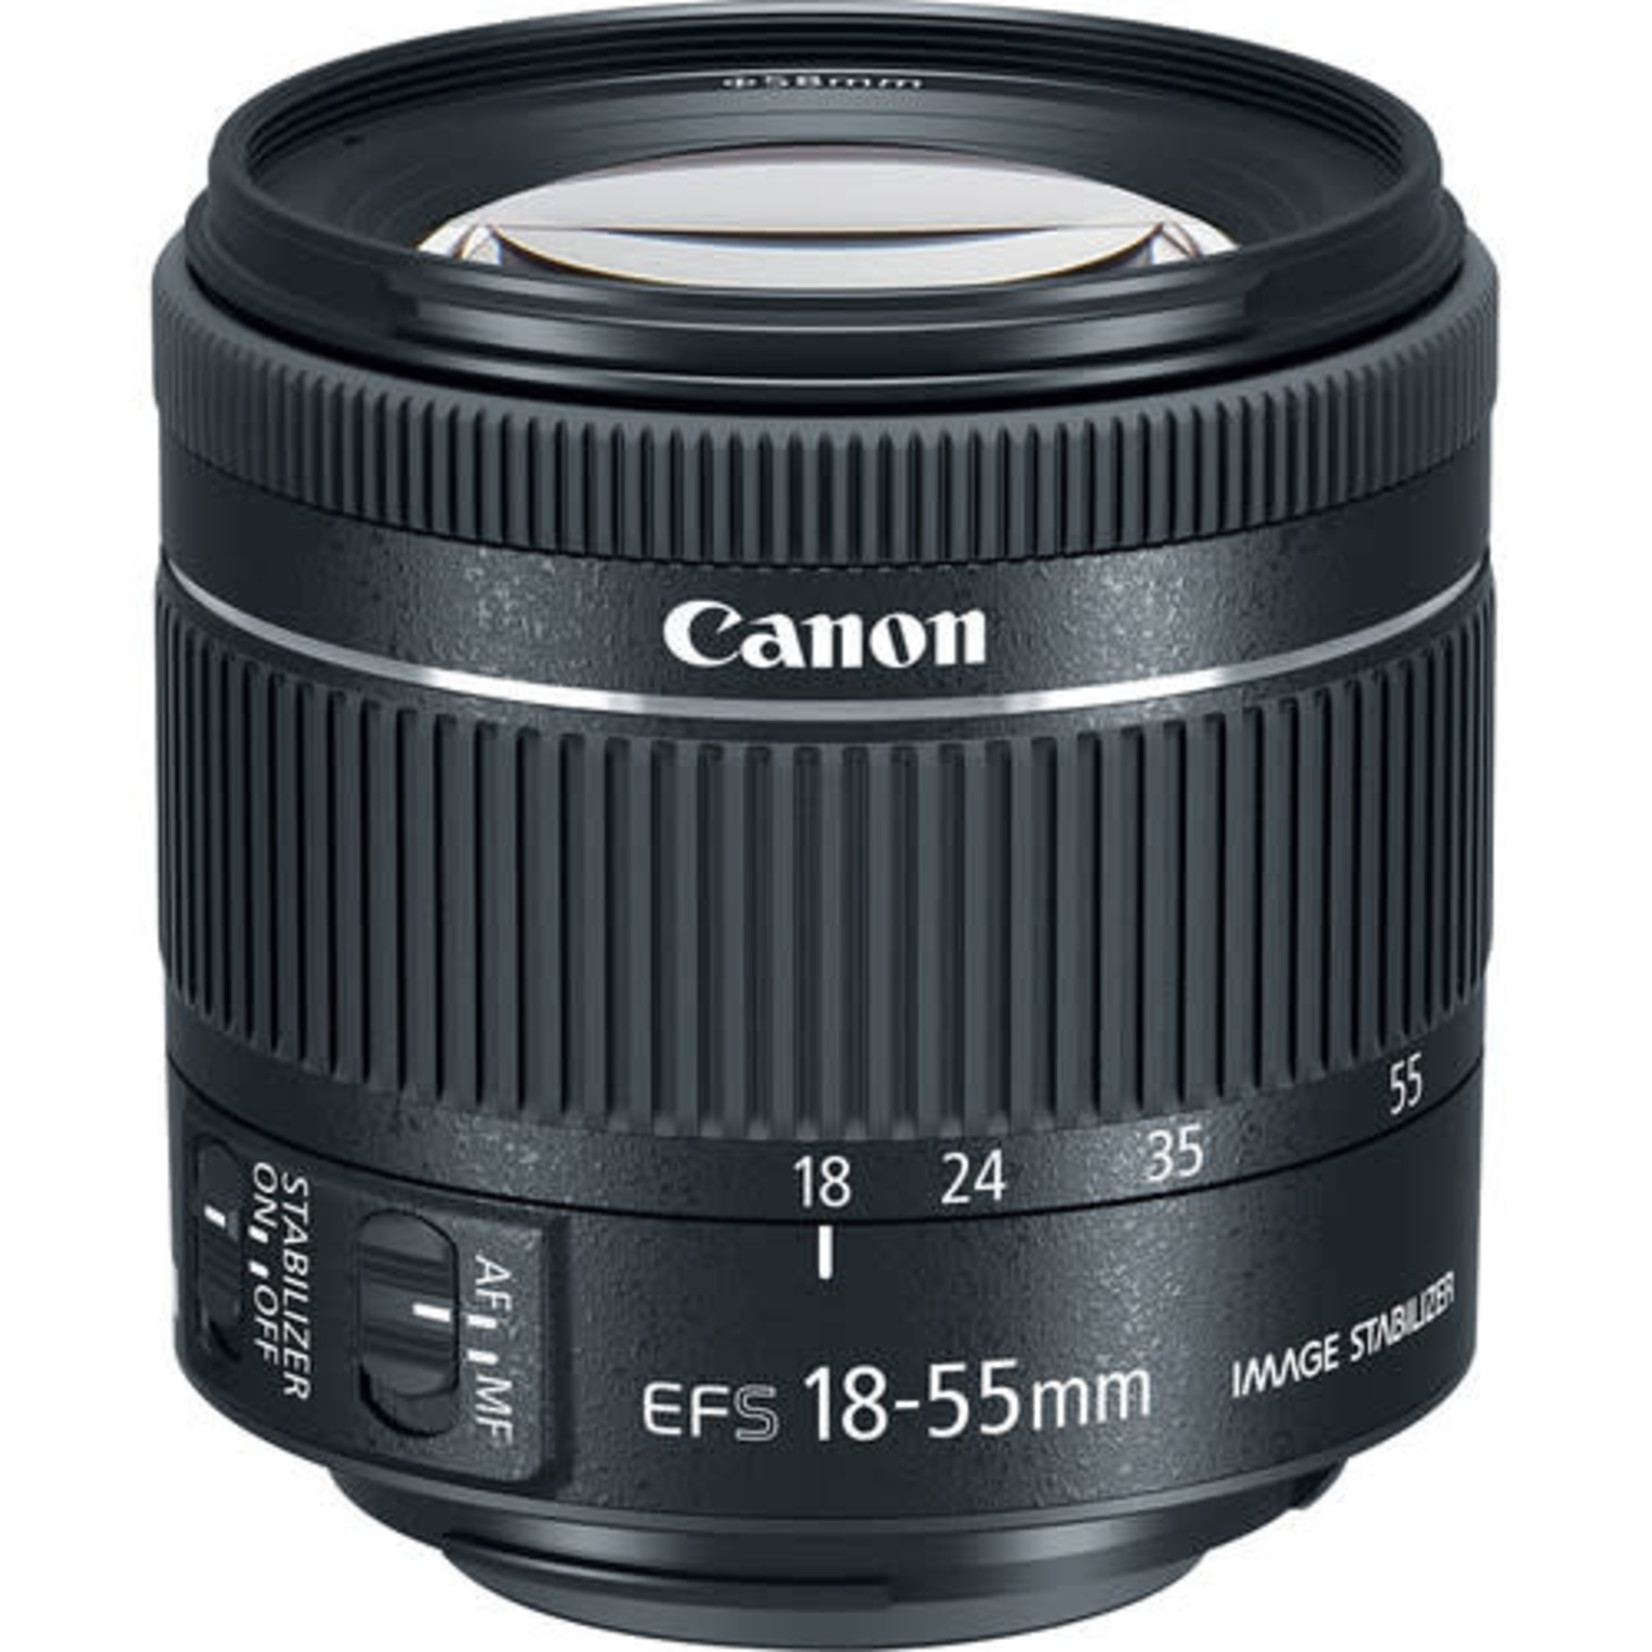 Canon Canon EF-S 18-55mm f/4-5.6 IS STM Lens